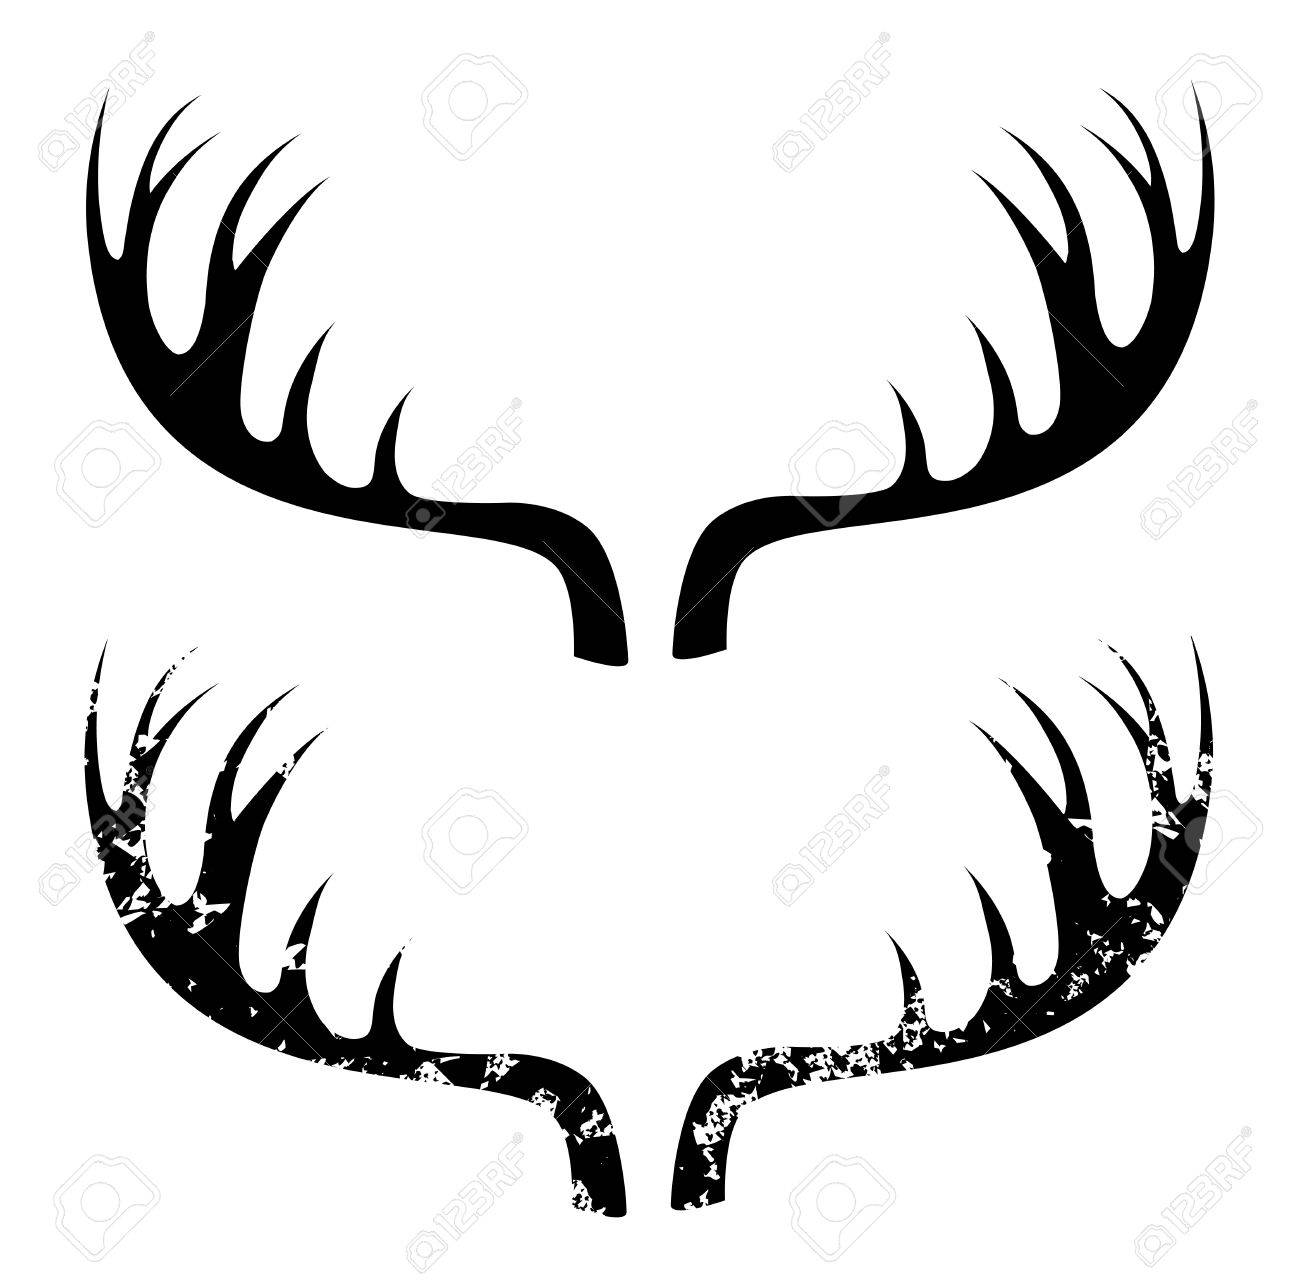 1300x1280 Deer Horns Royalty Free Cliparts, Vectors, And Stock Illustration